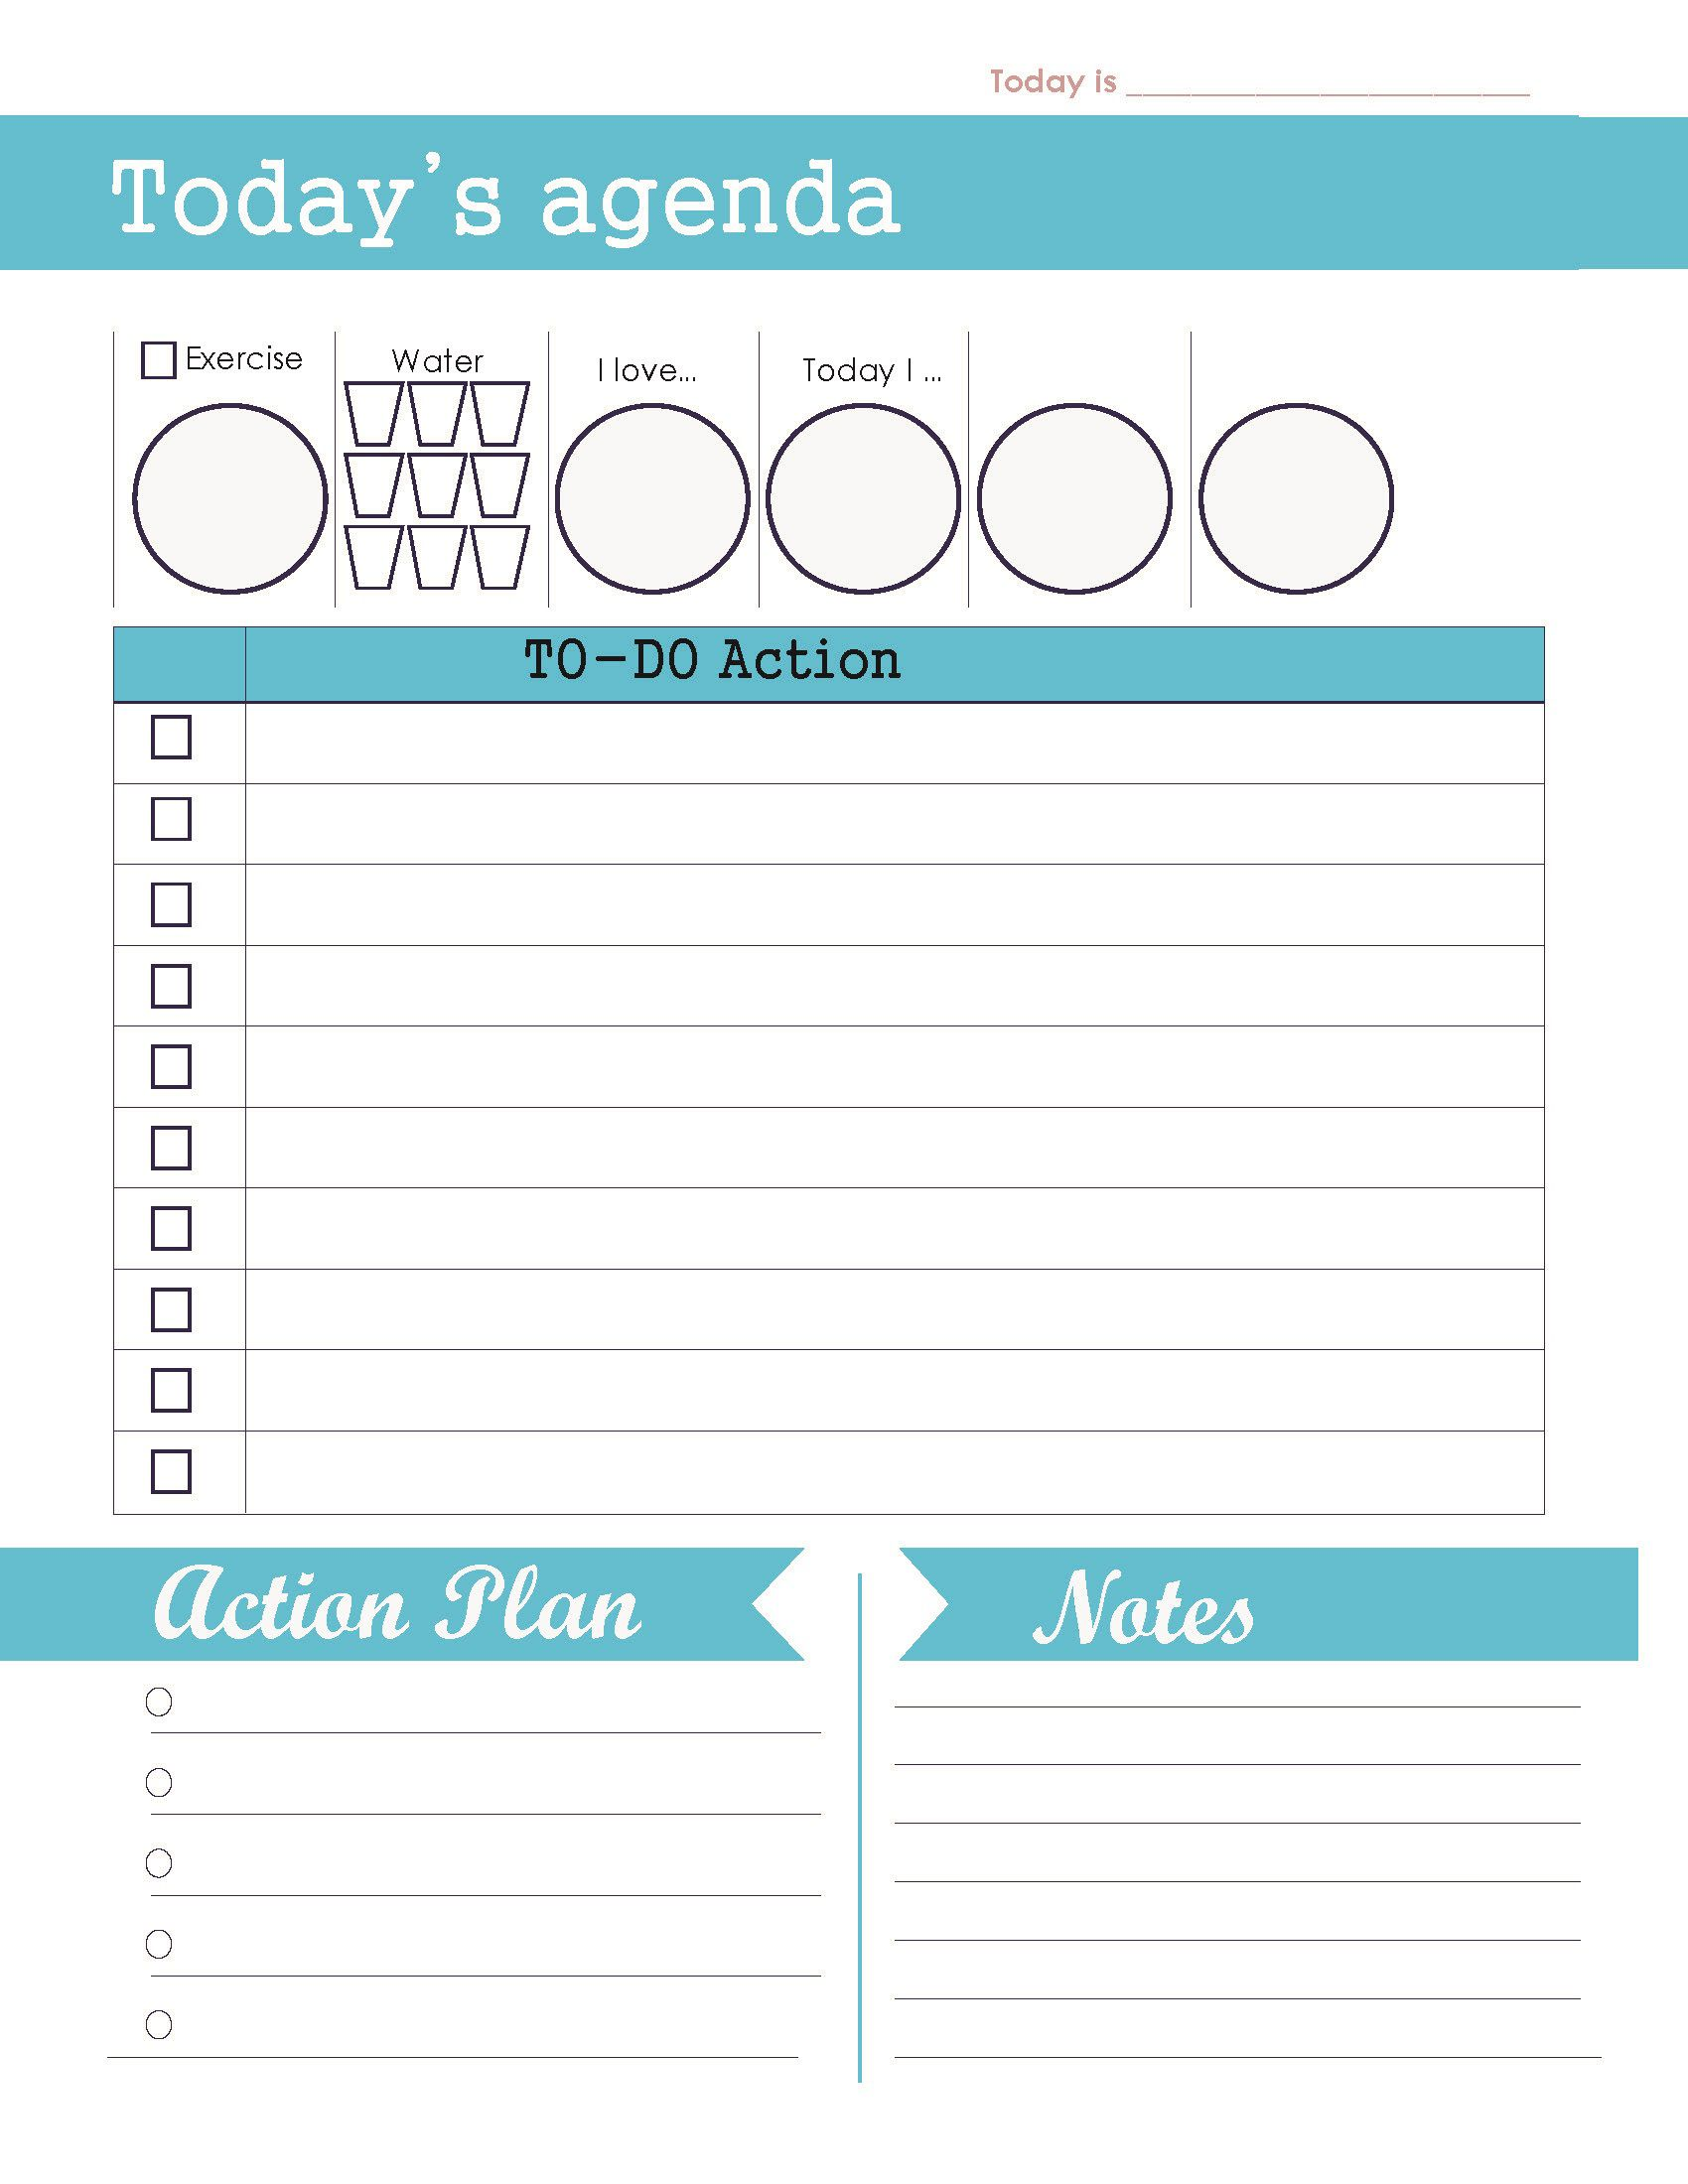 002 Frightening To Do List Template Inspiration  Templates Microsoft Excel Printable FreeFull